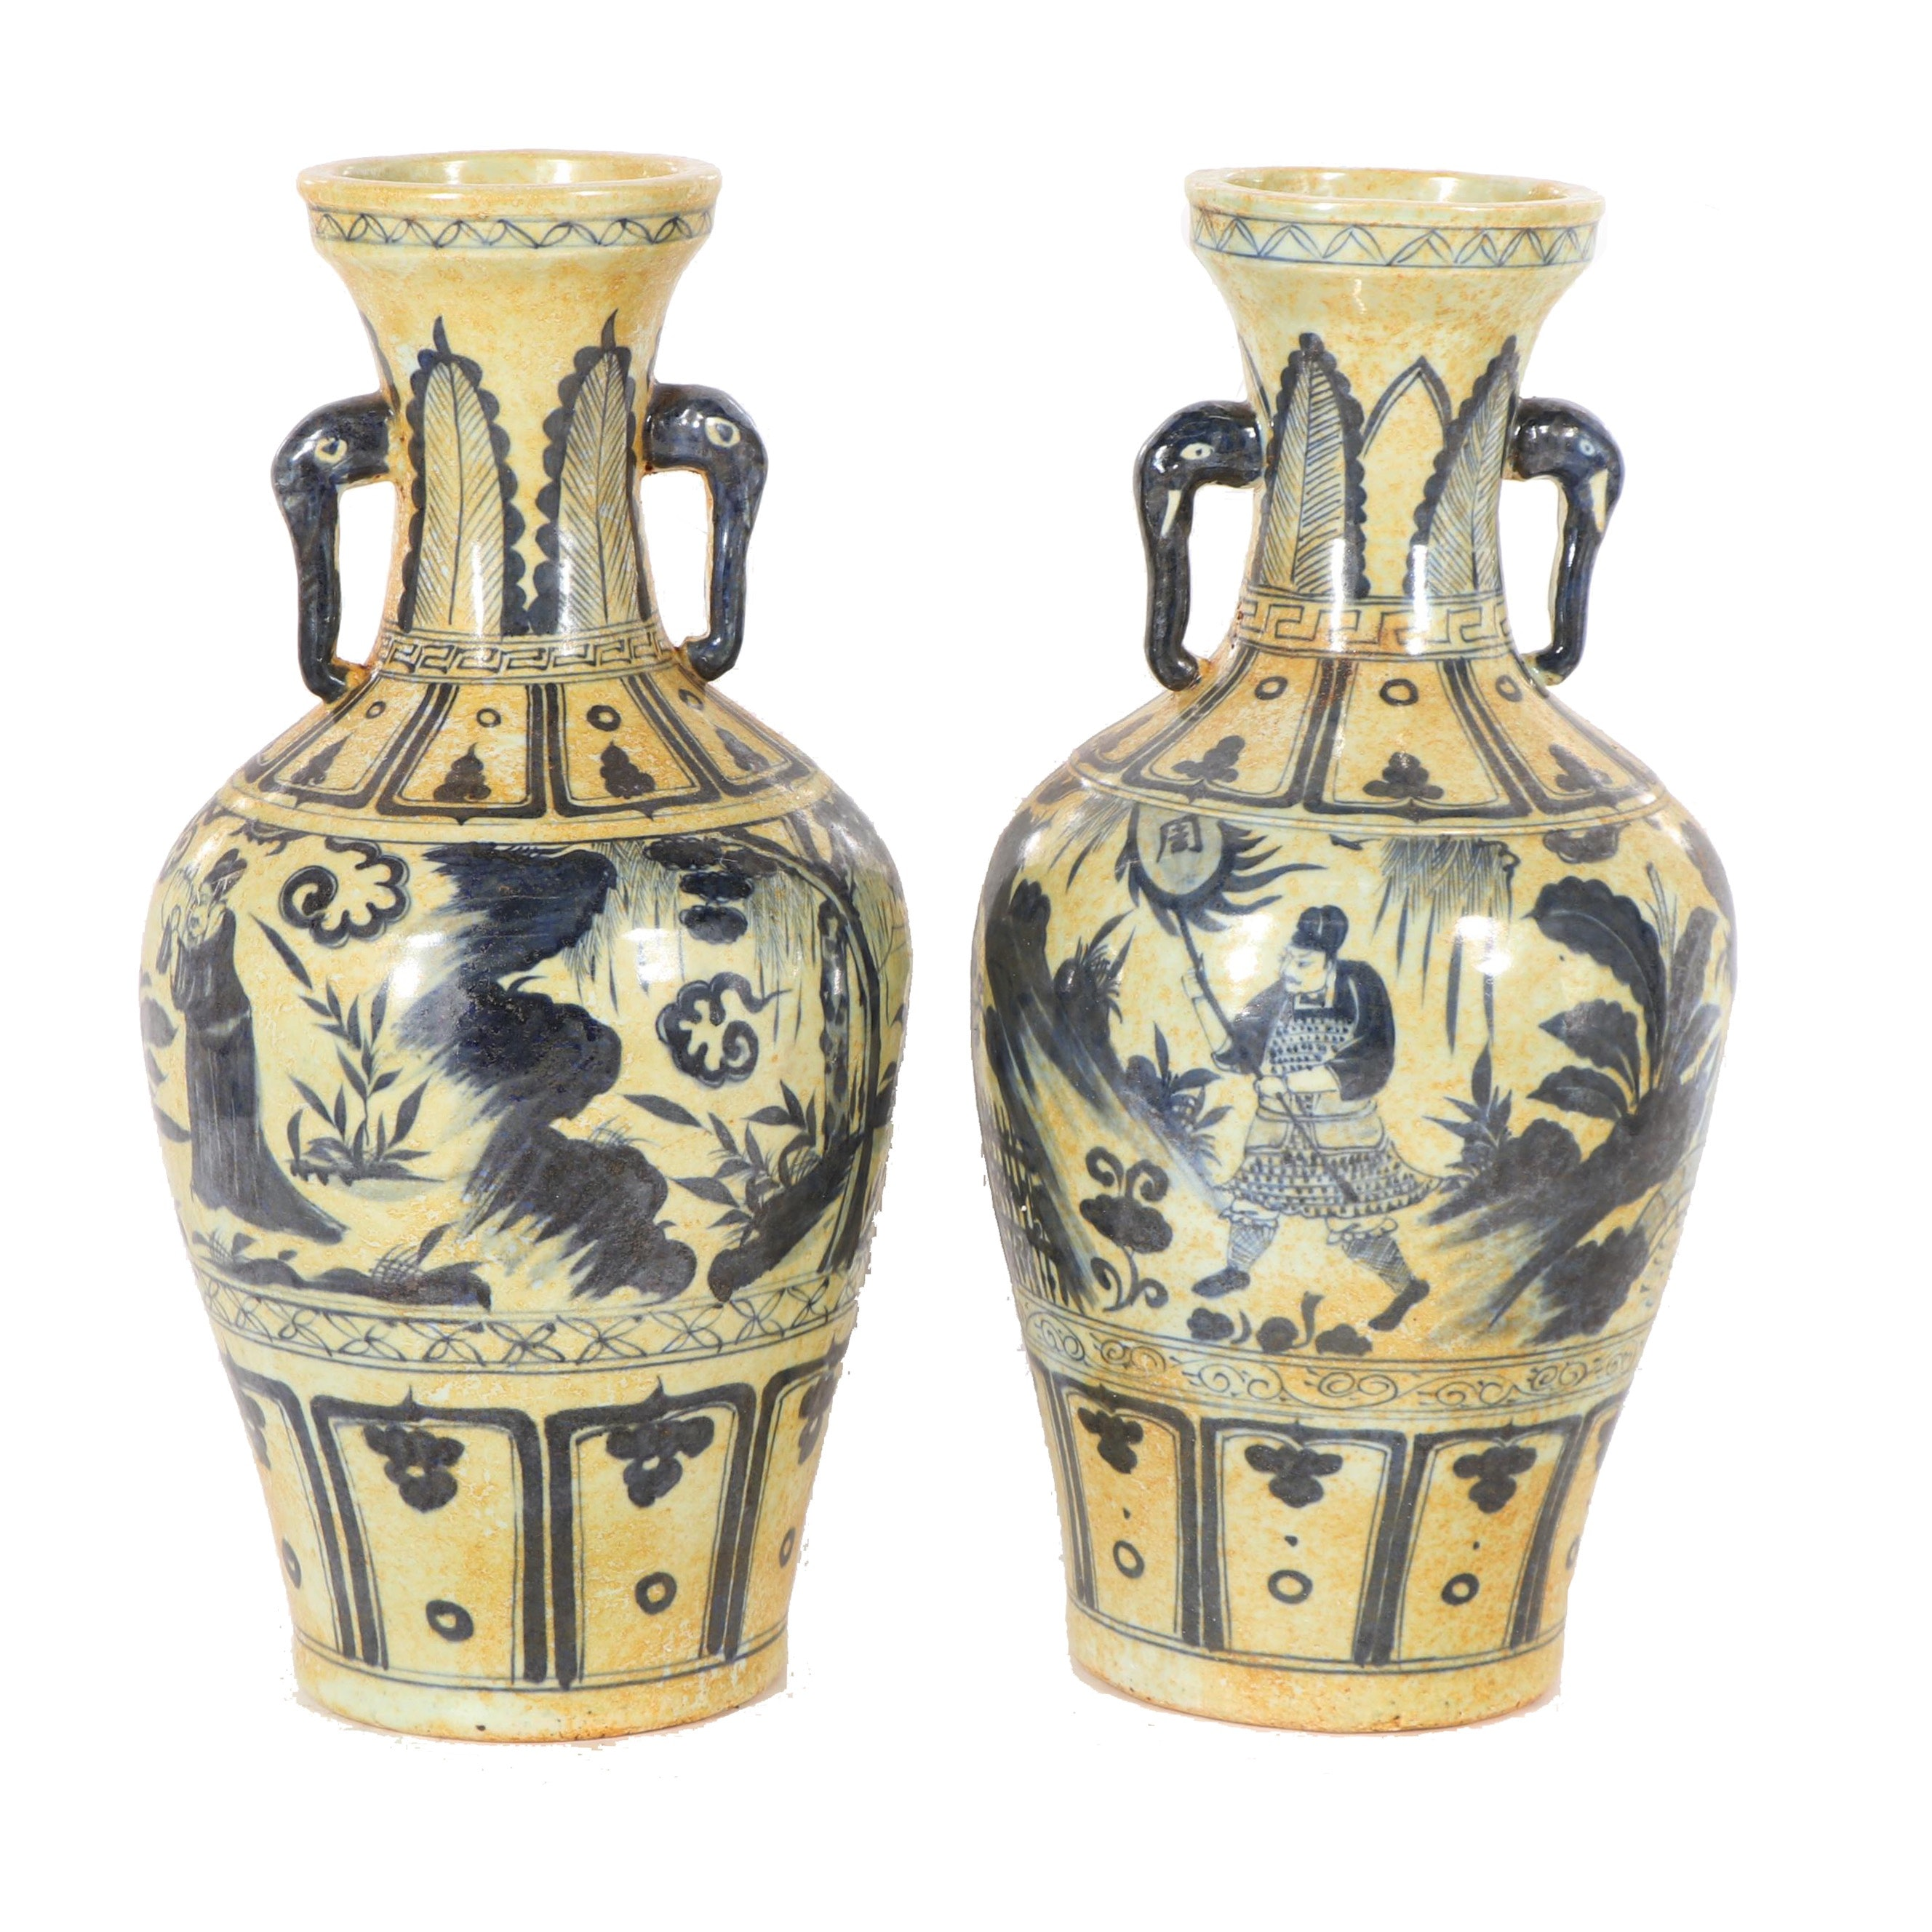 Chinese Blue and White Ceramic Vases with Handles